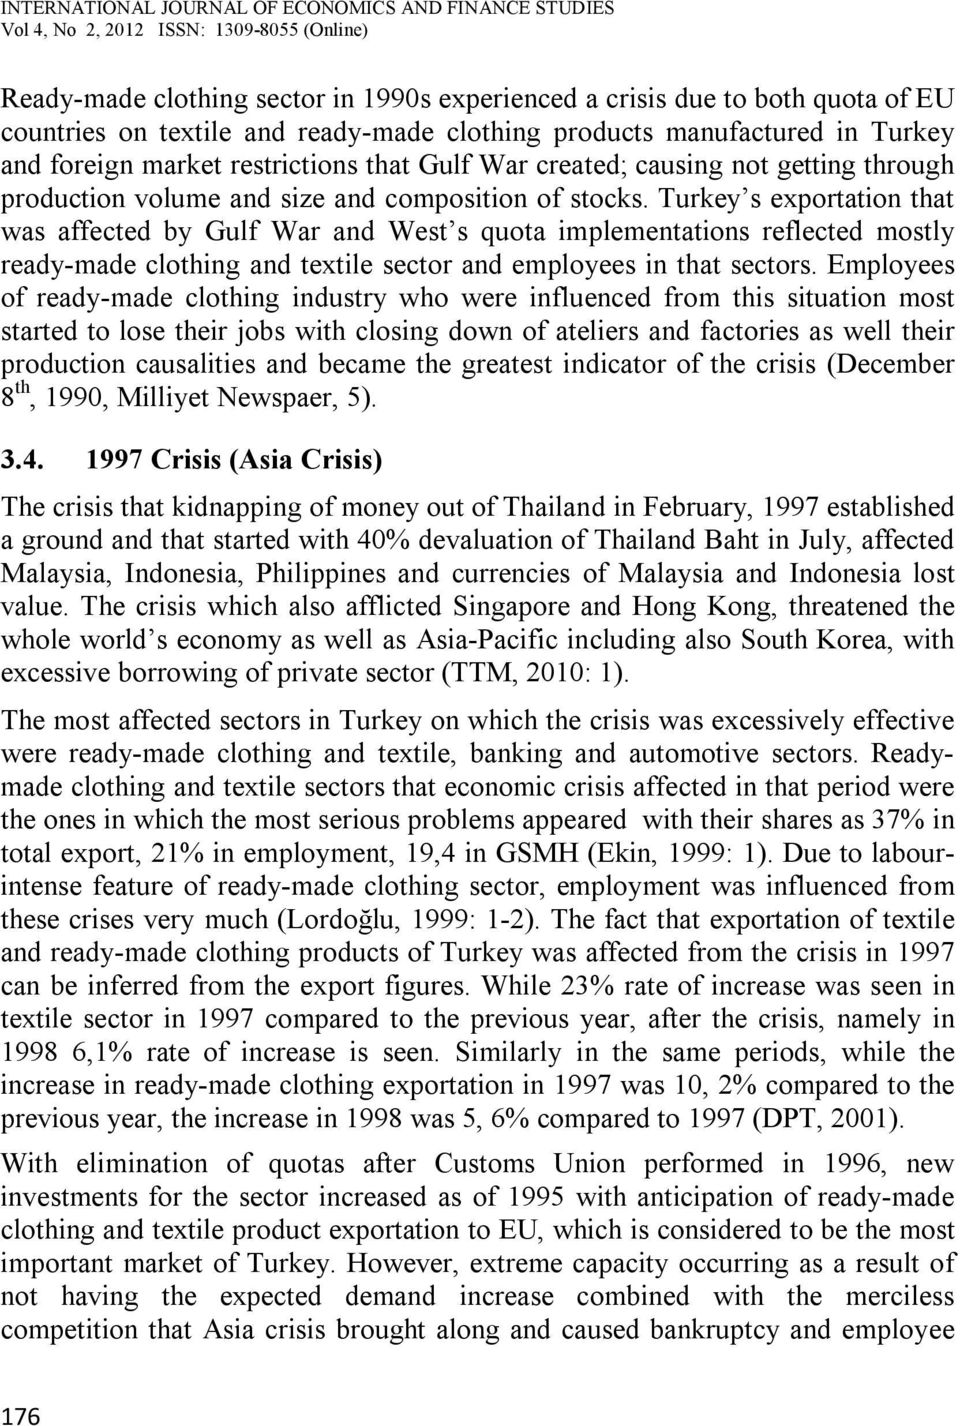 Turkey s exportation that was affected by Gulf War and West s quota implementations reflected mostly ready-made clothing and textile sector and employees in that sectors.